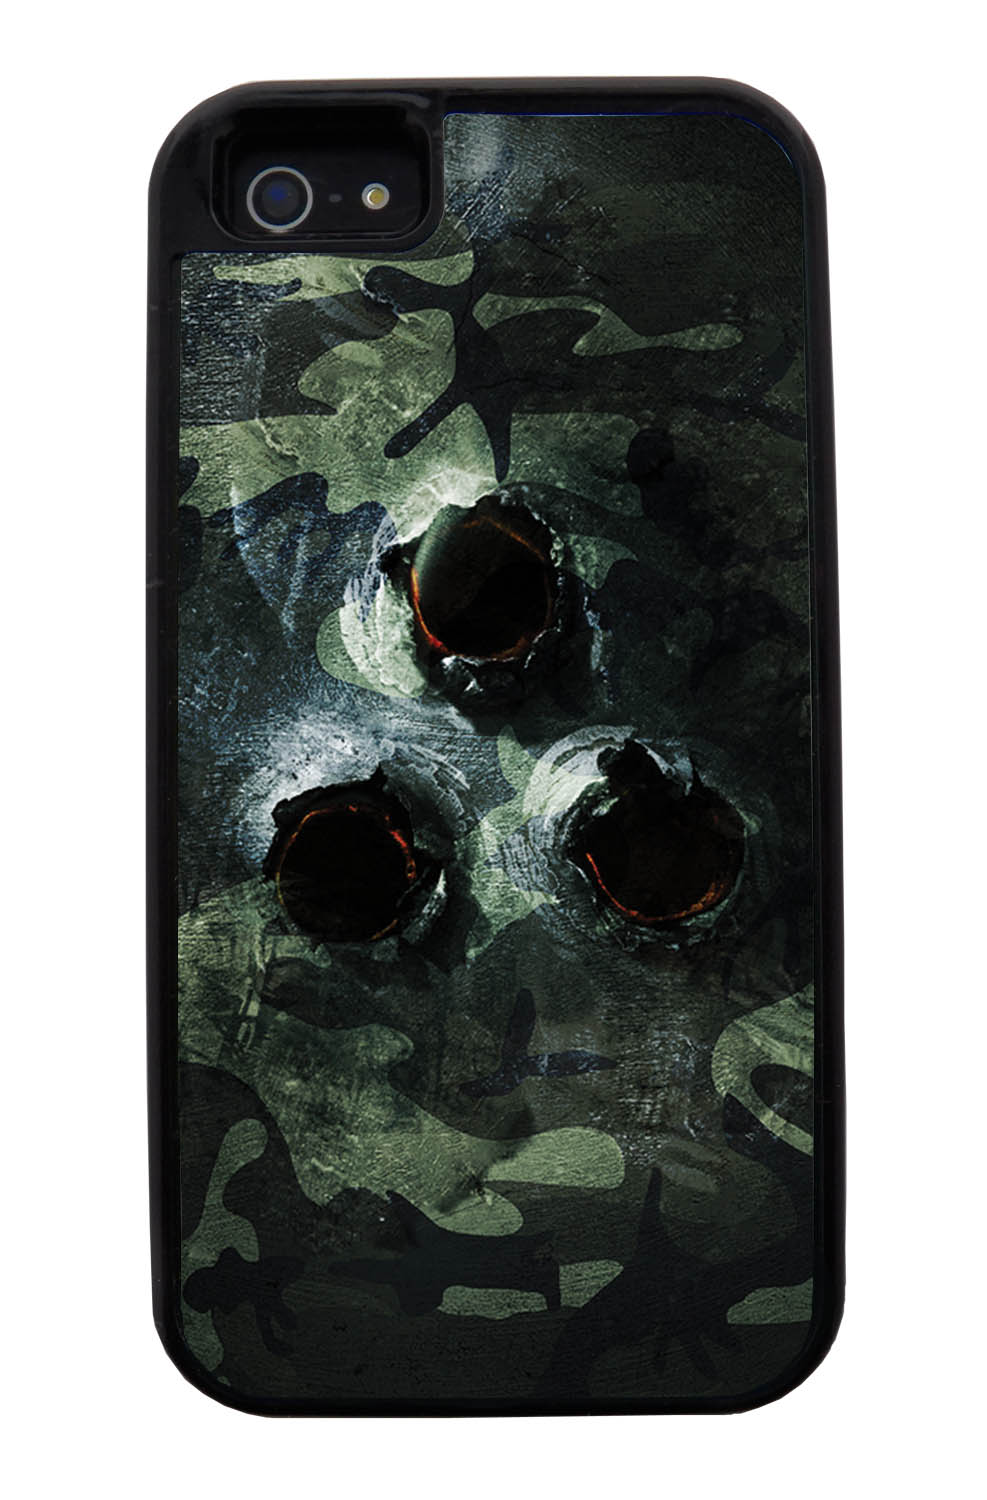 Apple iPhone 5 / 5S Camo Case - Metal Bullet Ridden Traditional - Woodland - Black Tough Hybrid Case